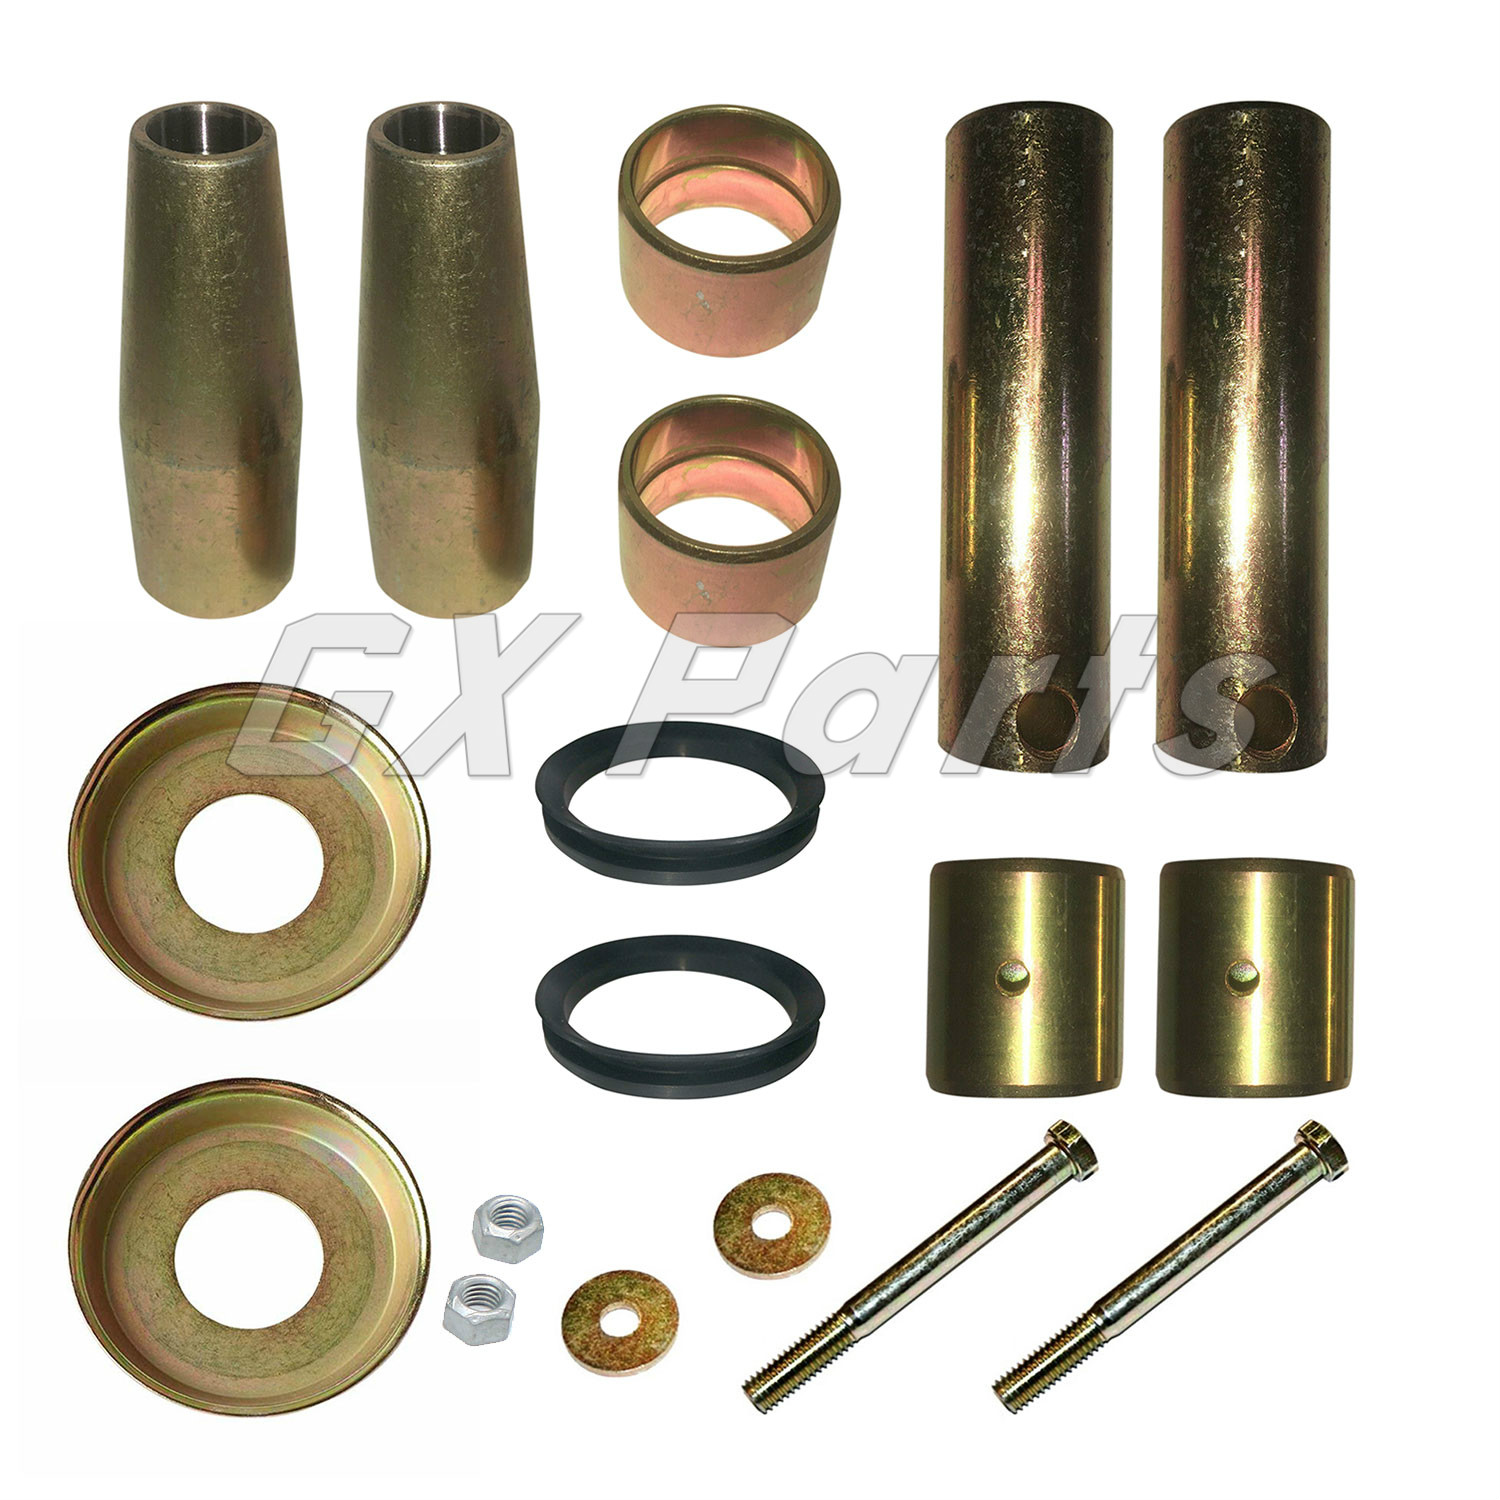 Pin Seal Bushing Repair Kit for Bobcat Skid Steer Loader S150 S160 S175 S185 773 T180 T190